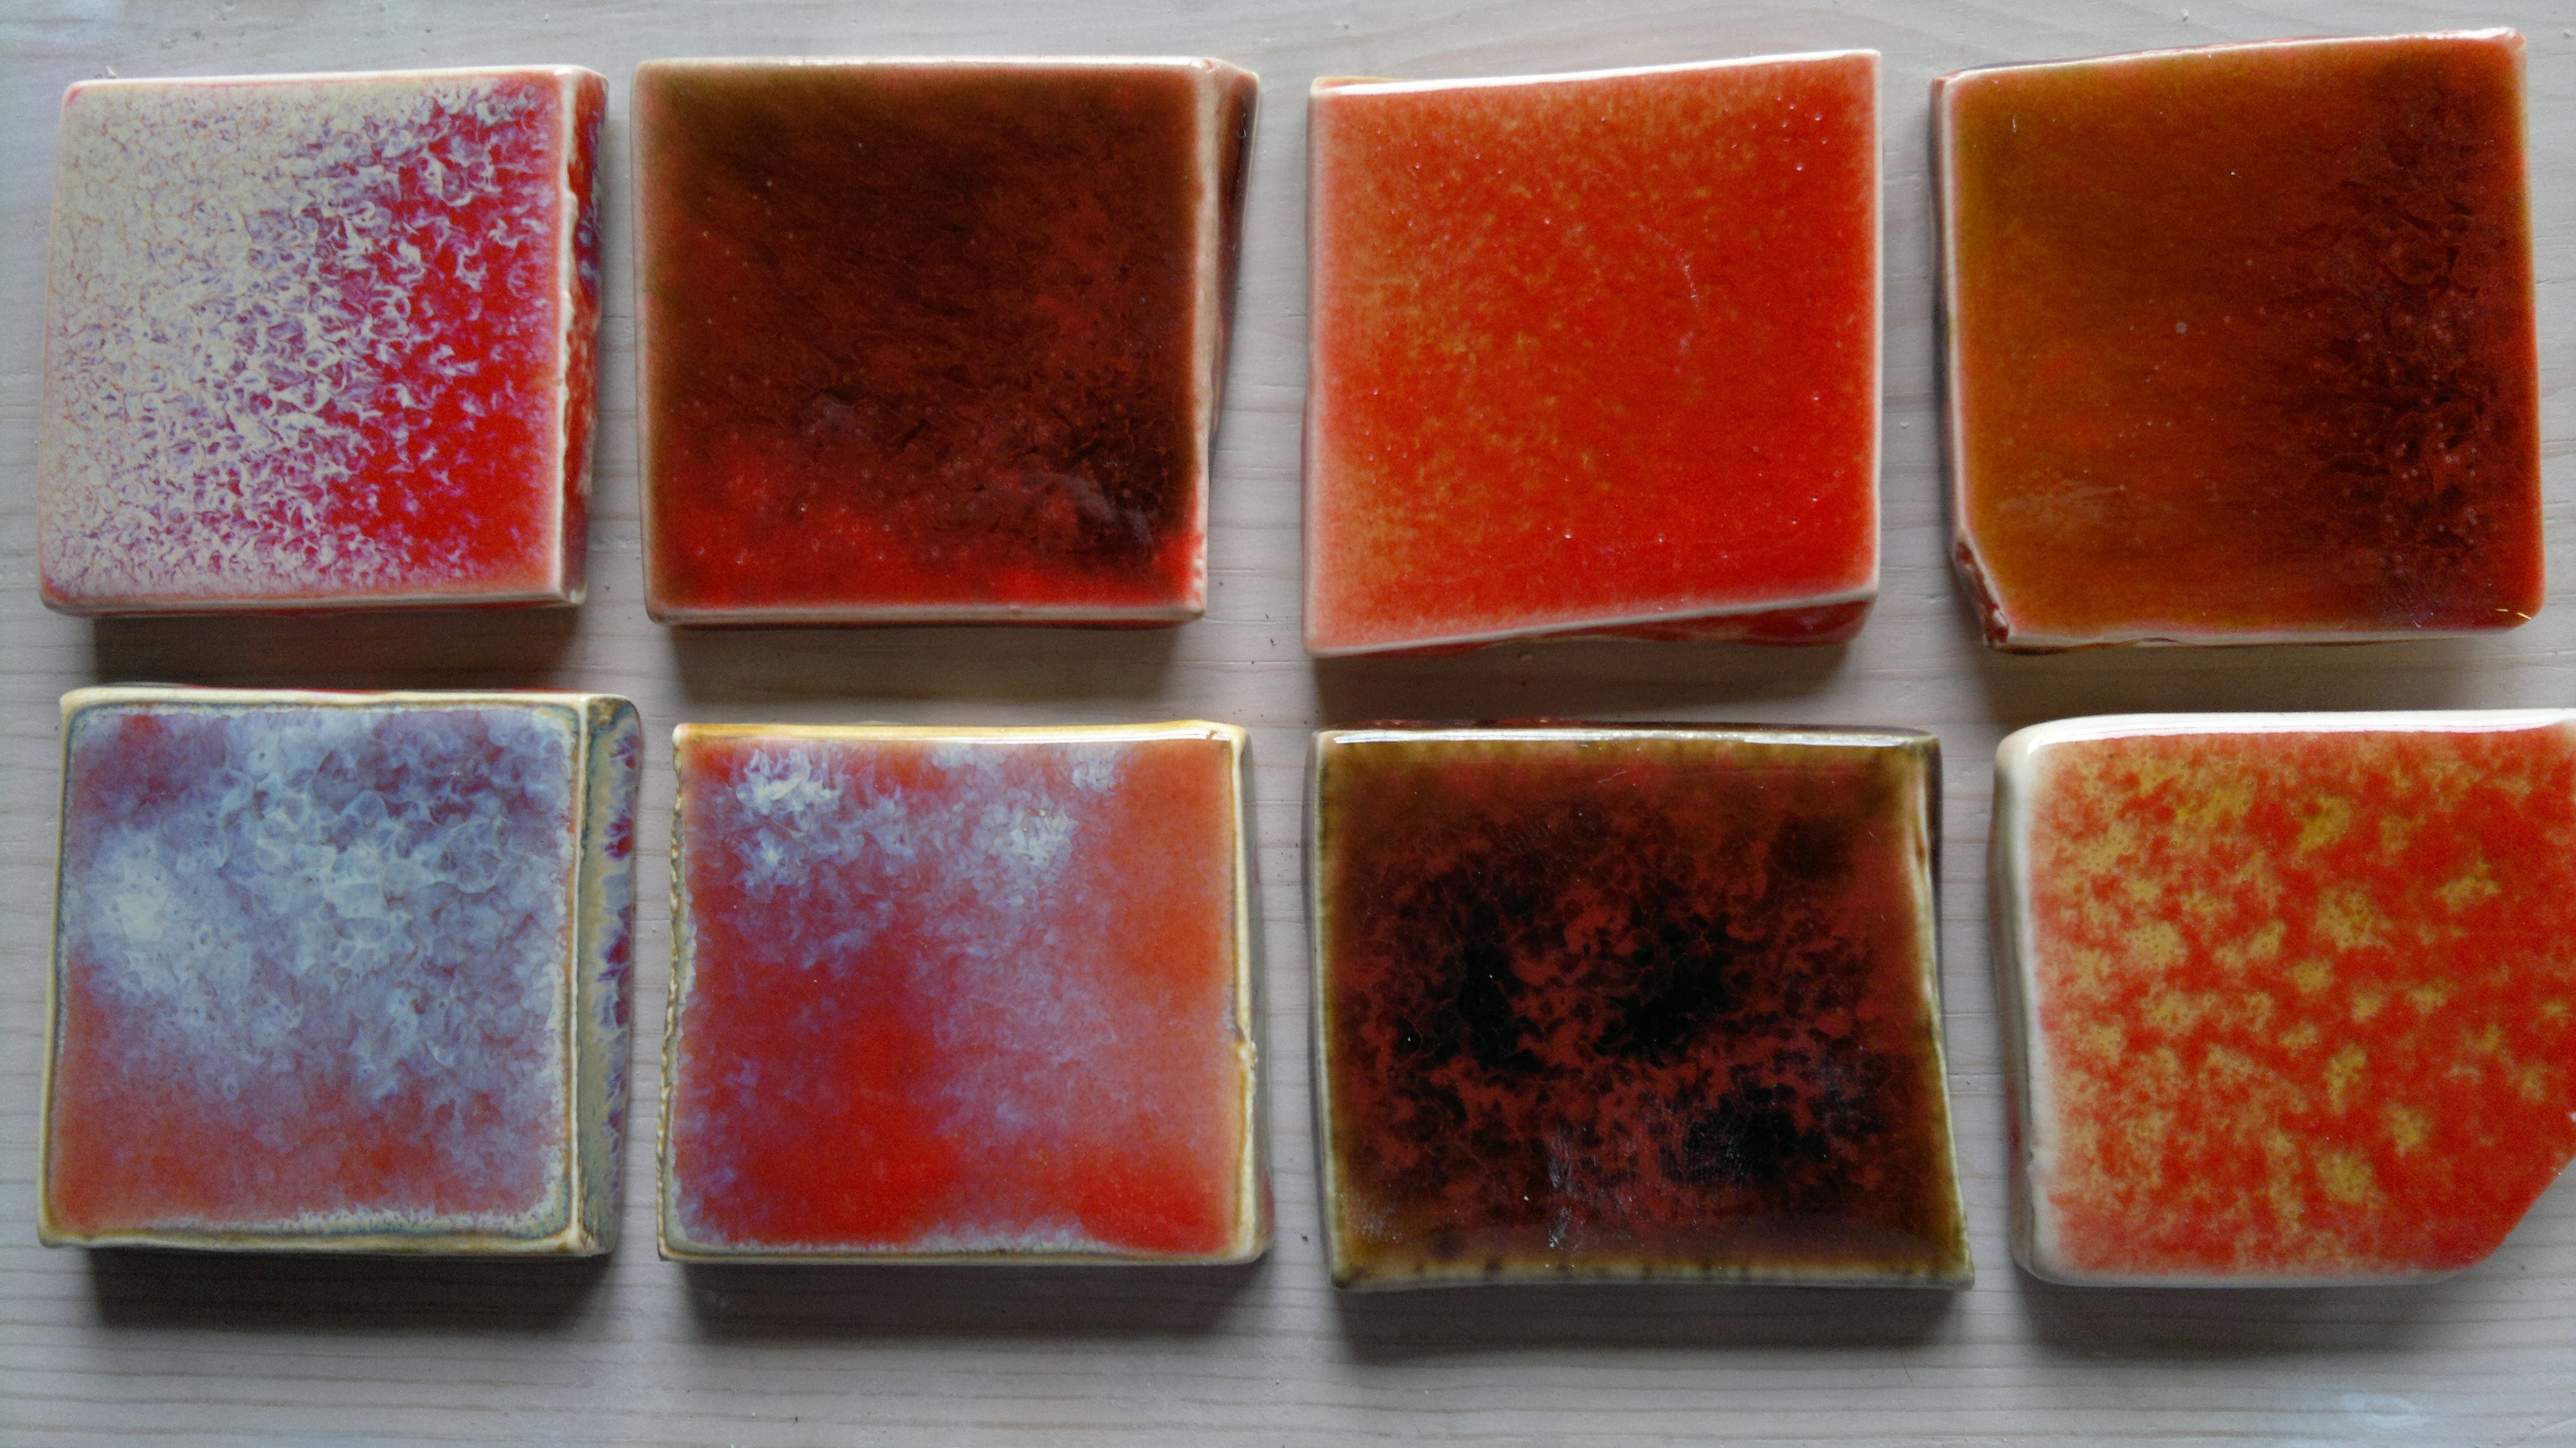 Opalescent Reds